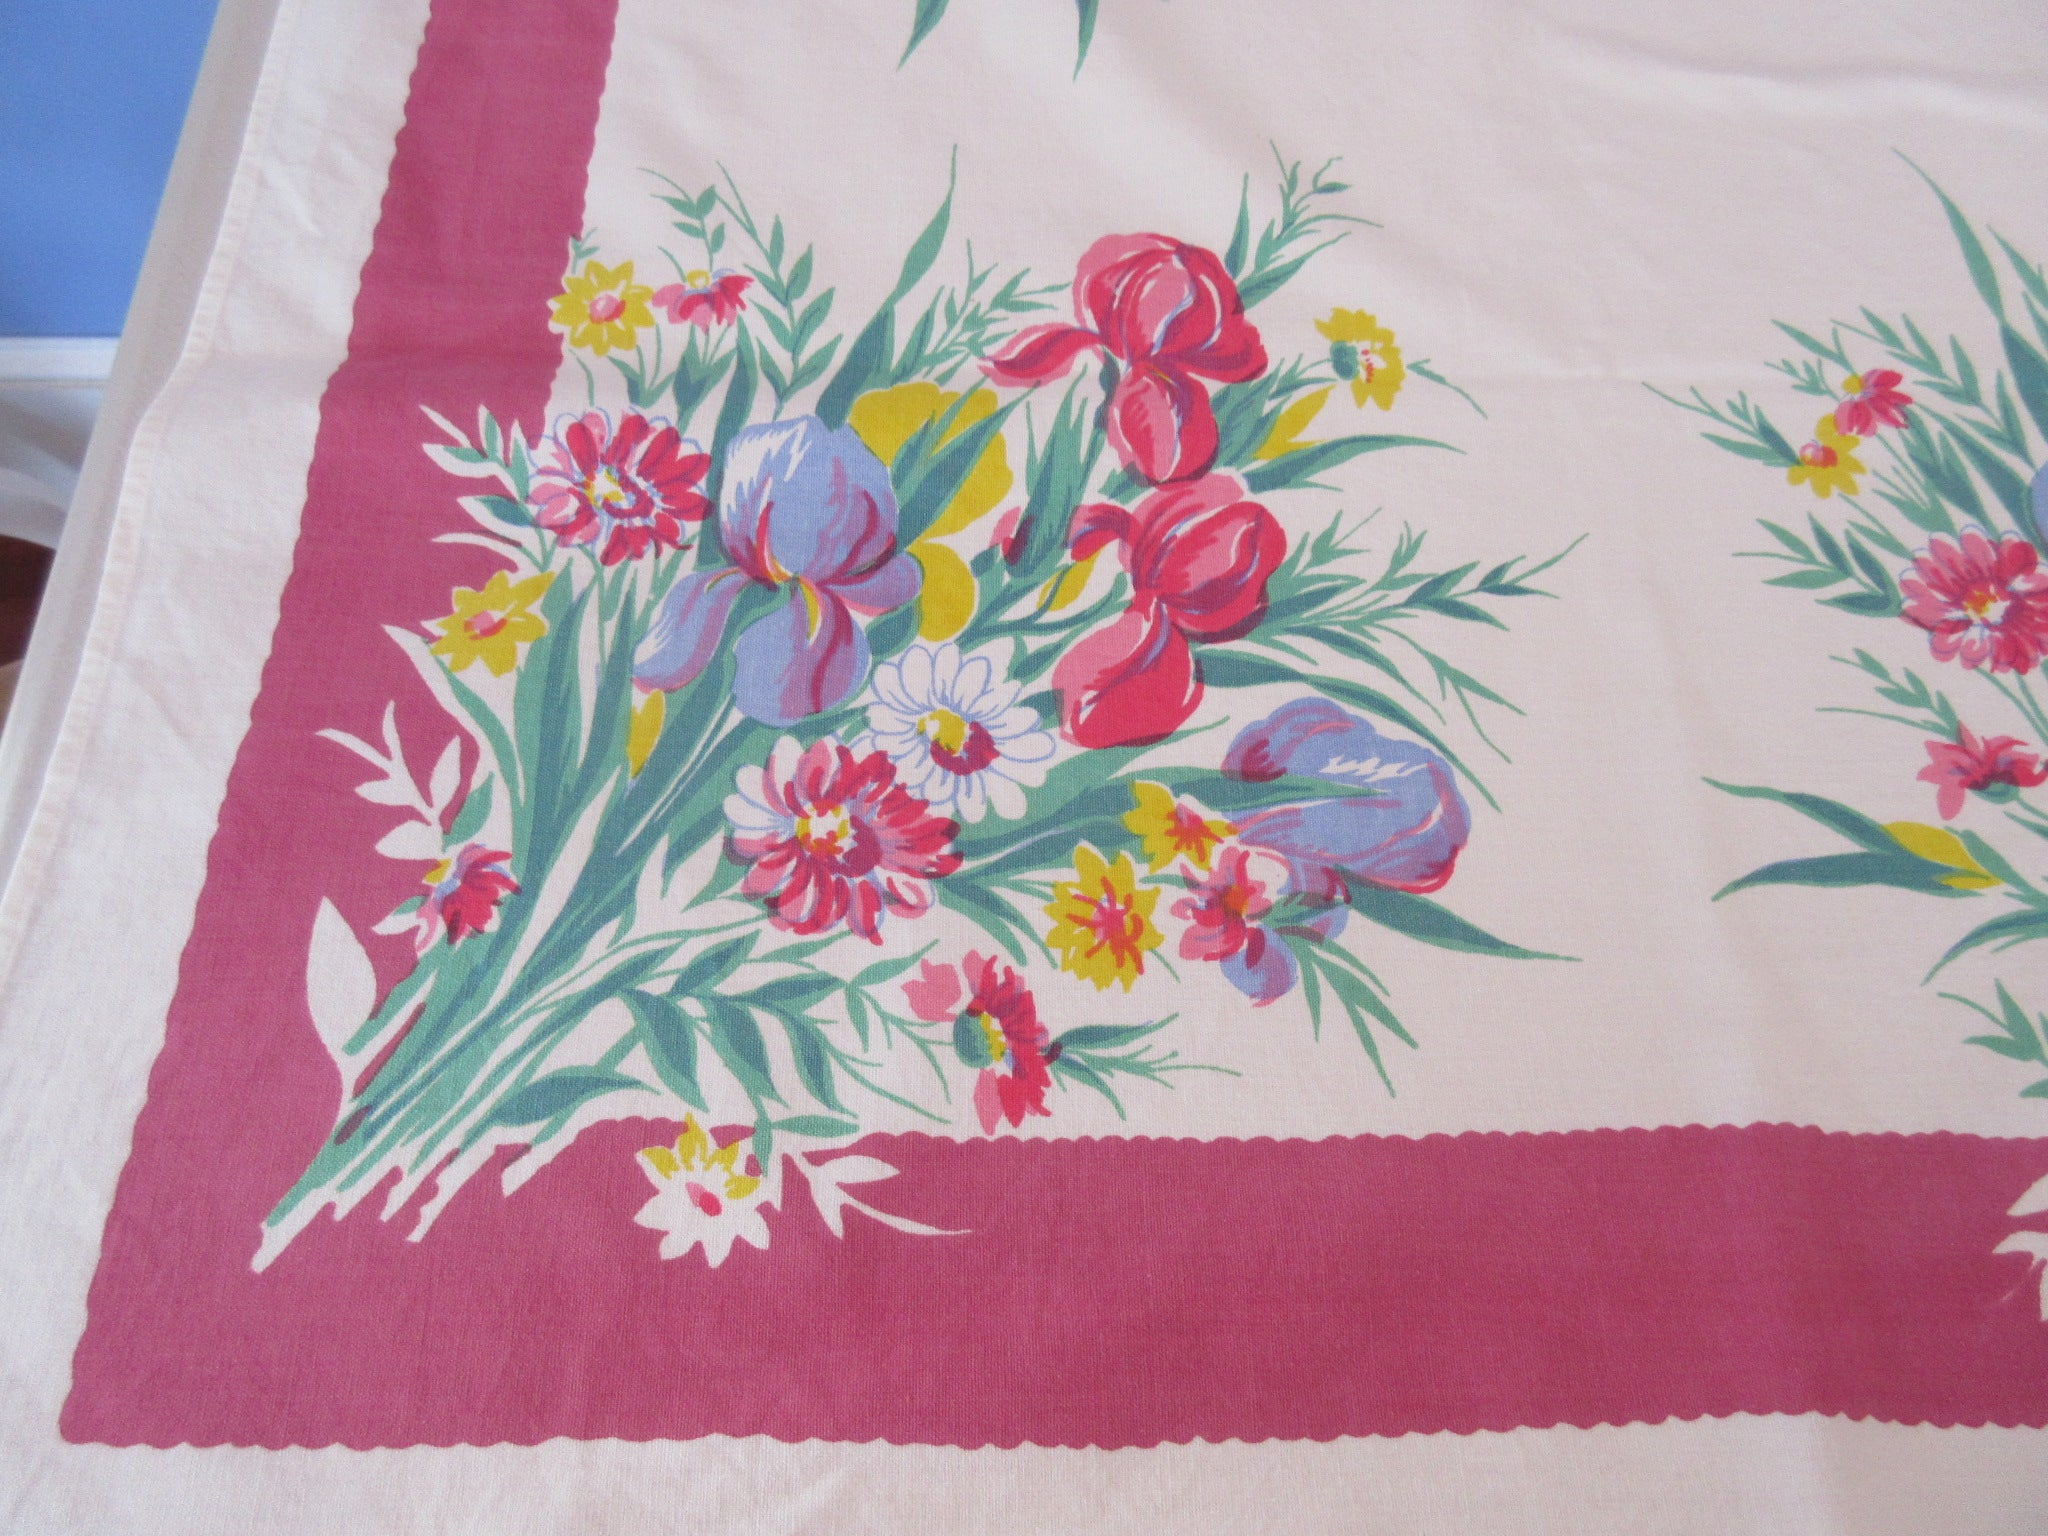 Wilendur Iris Daisies on Pink Floral Vintage Printed Tablecloth (66 X 54)